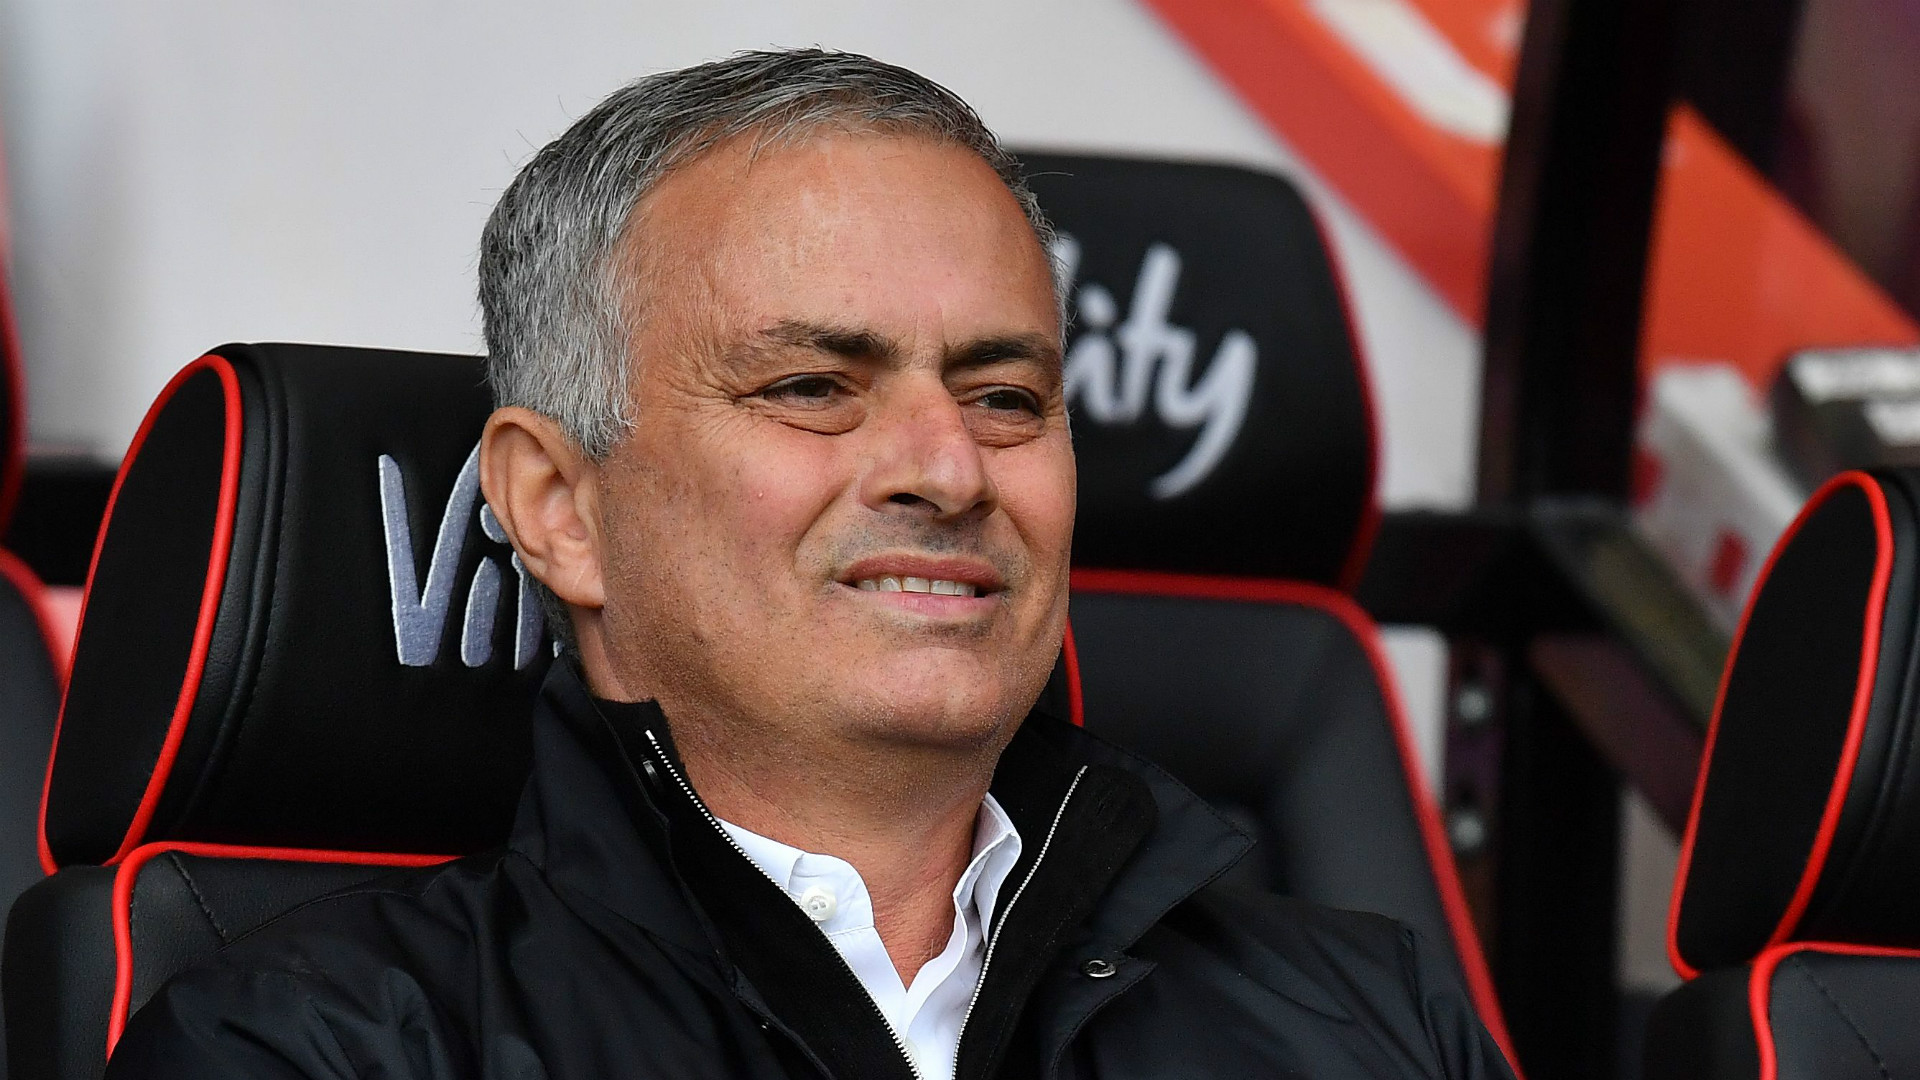 'Lucky' Manchester United giving Mourinho white hair